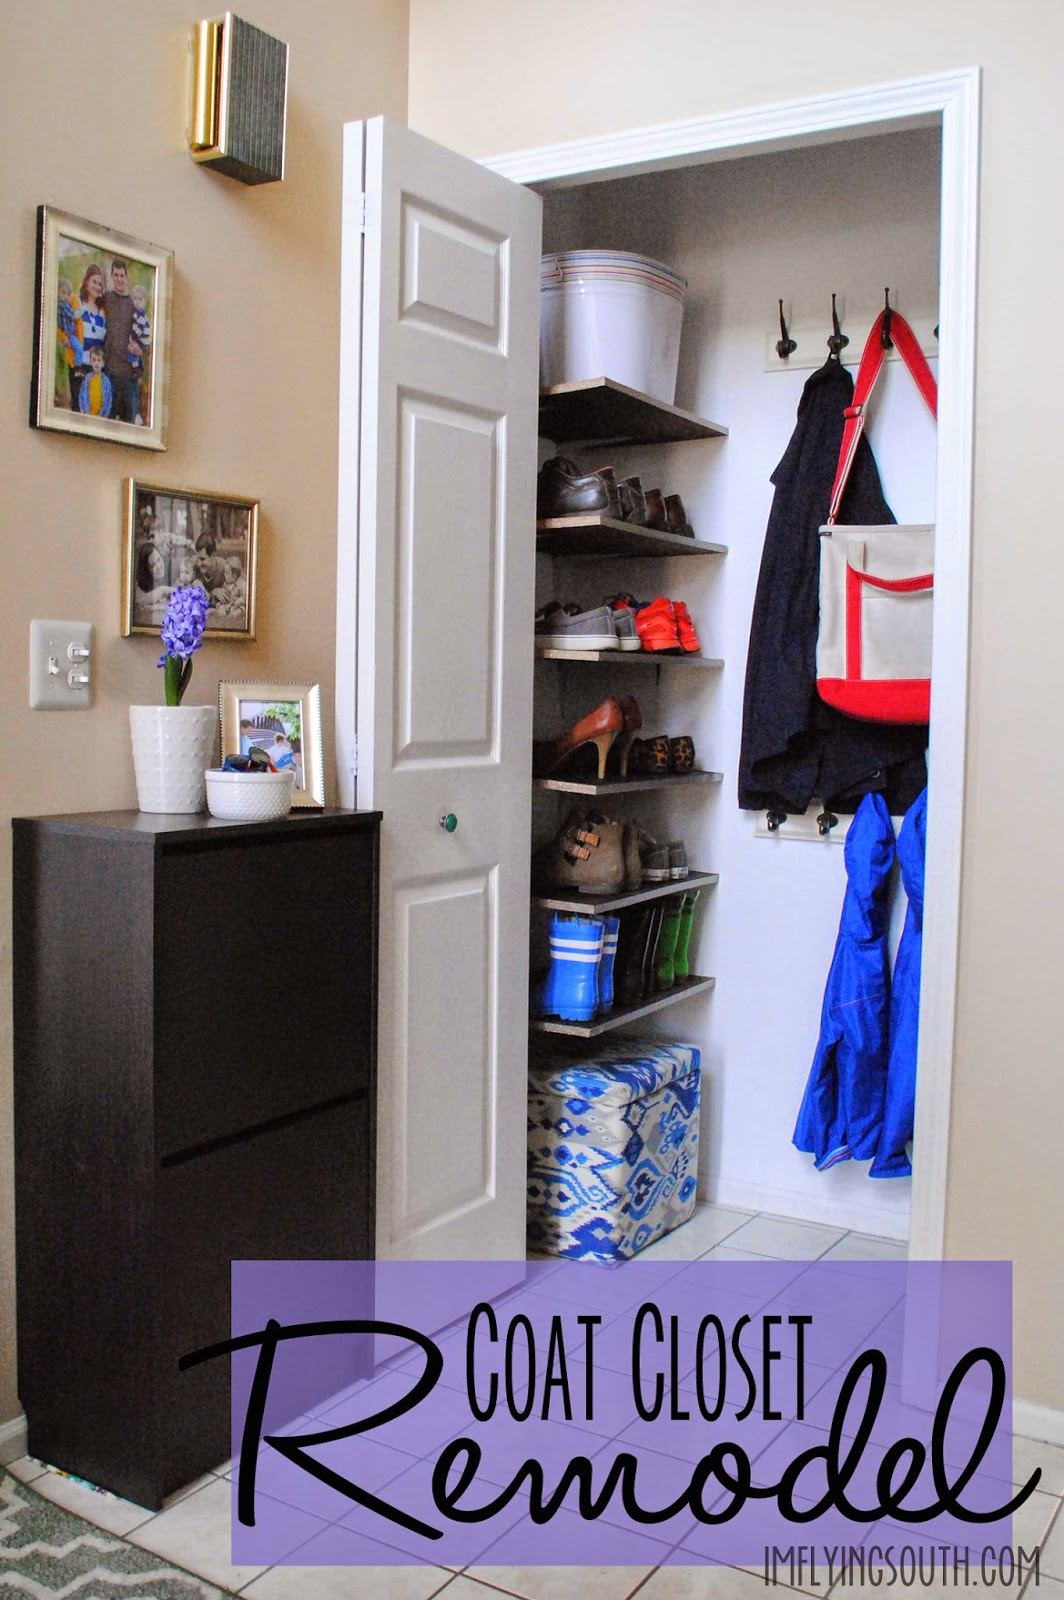 A Little Coat Closet Remodel Has Been In The Cards Since About The Minute  We Closed On The House. Both Entrances To Our House Are Through The Foyer    The ...